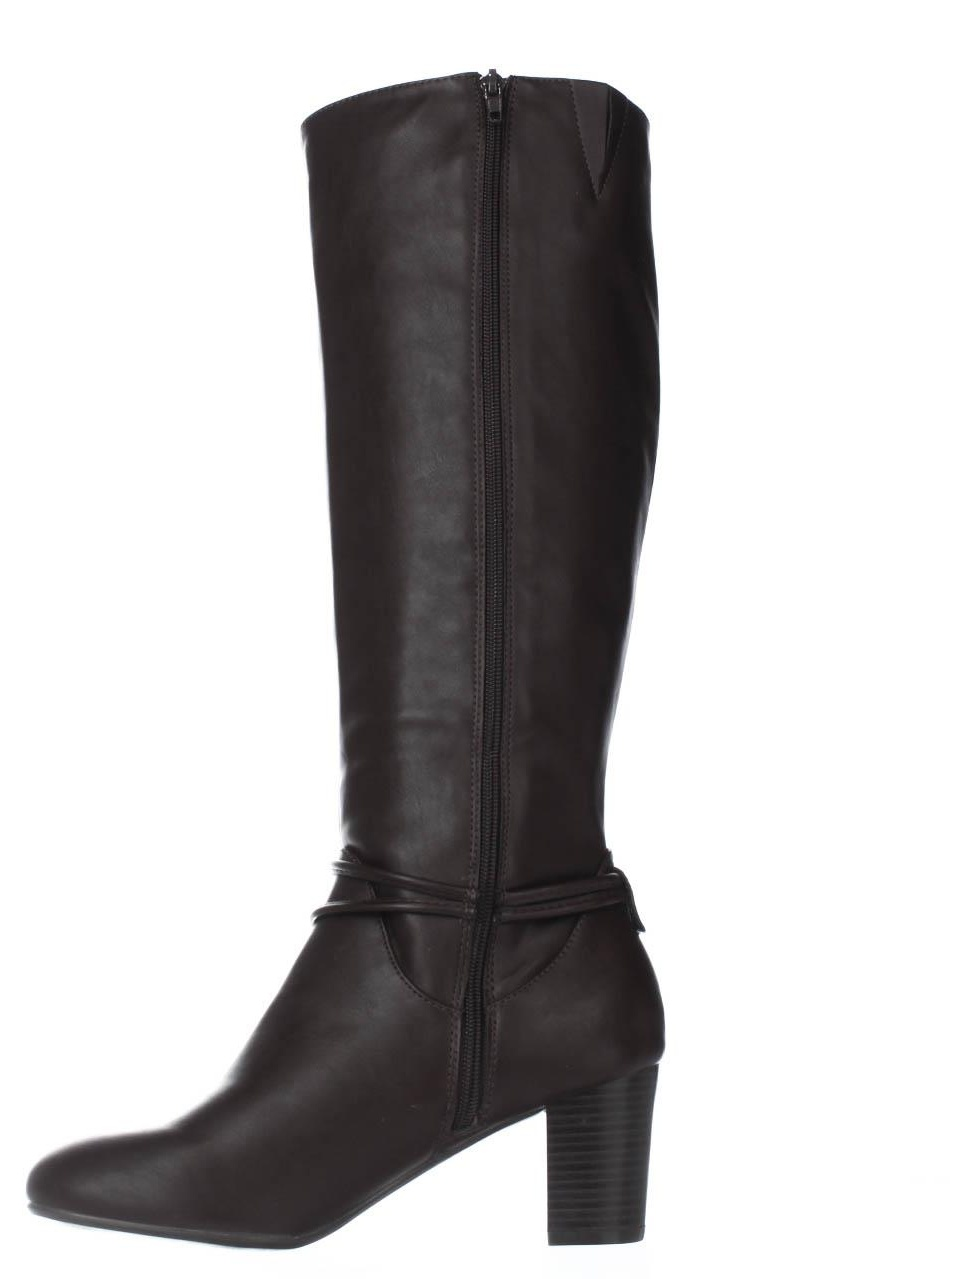 Womens KS35 Gaffar Knee High Dress Boots - Brown